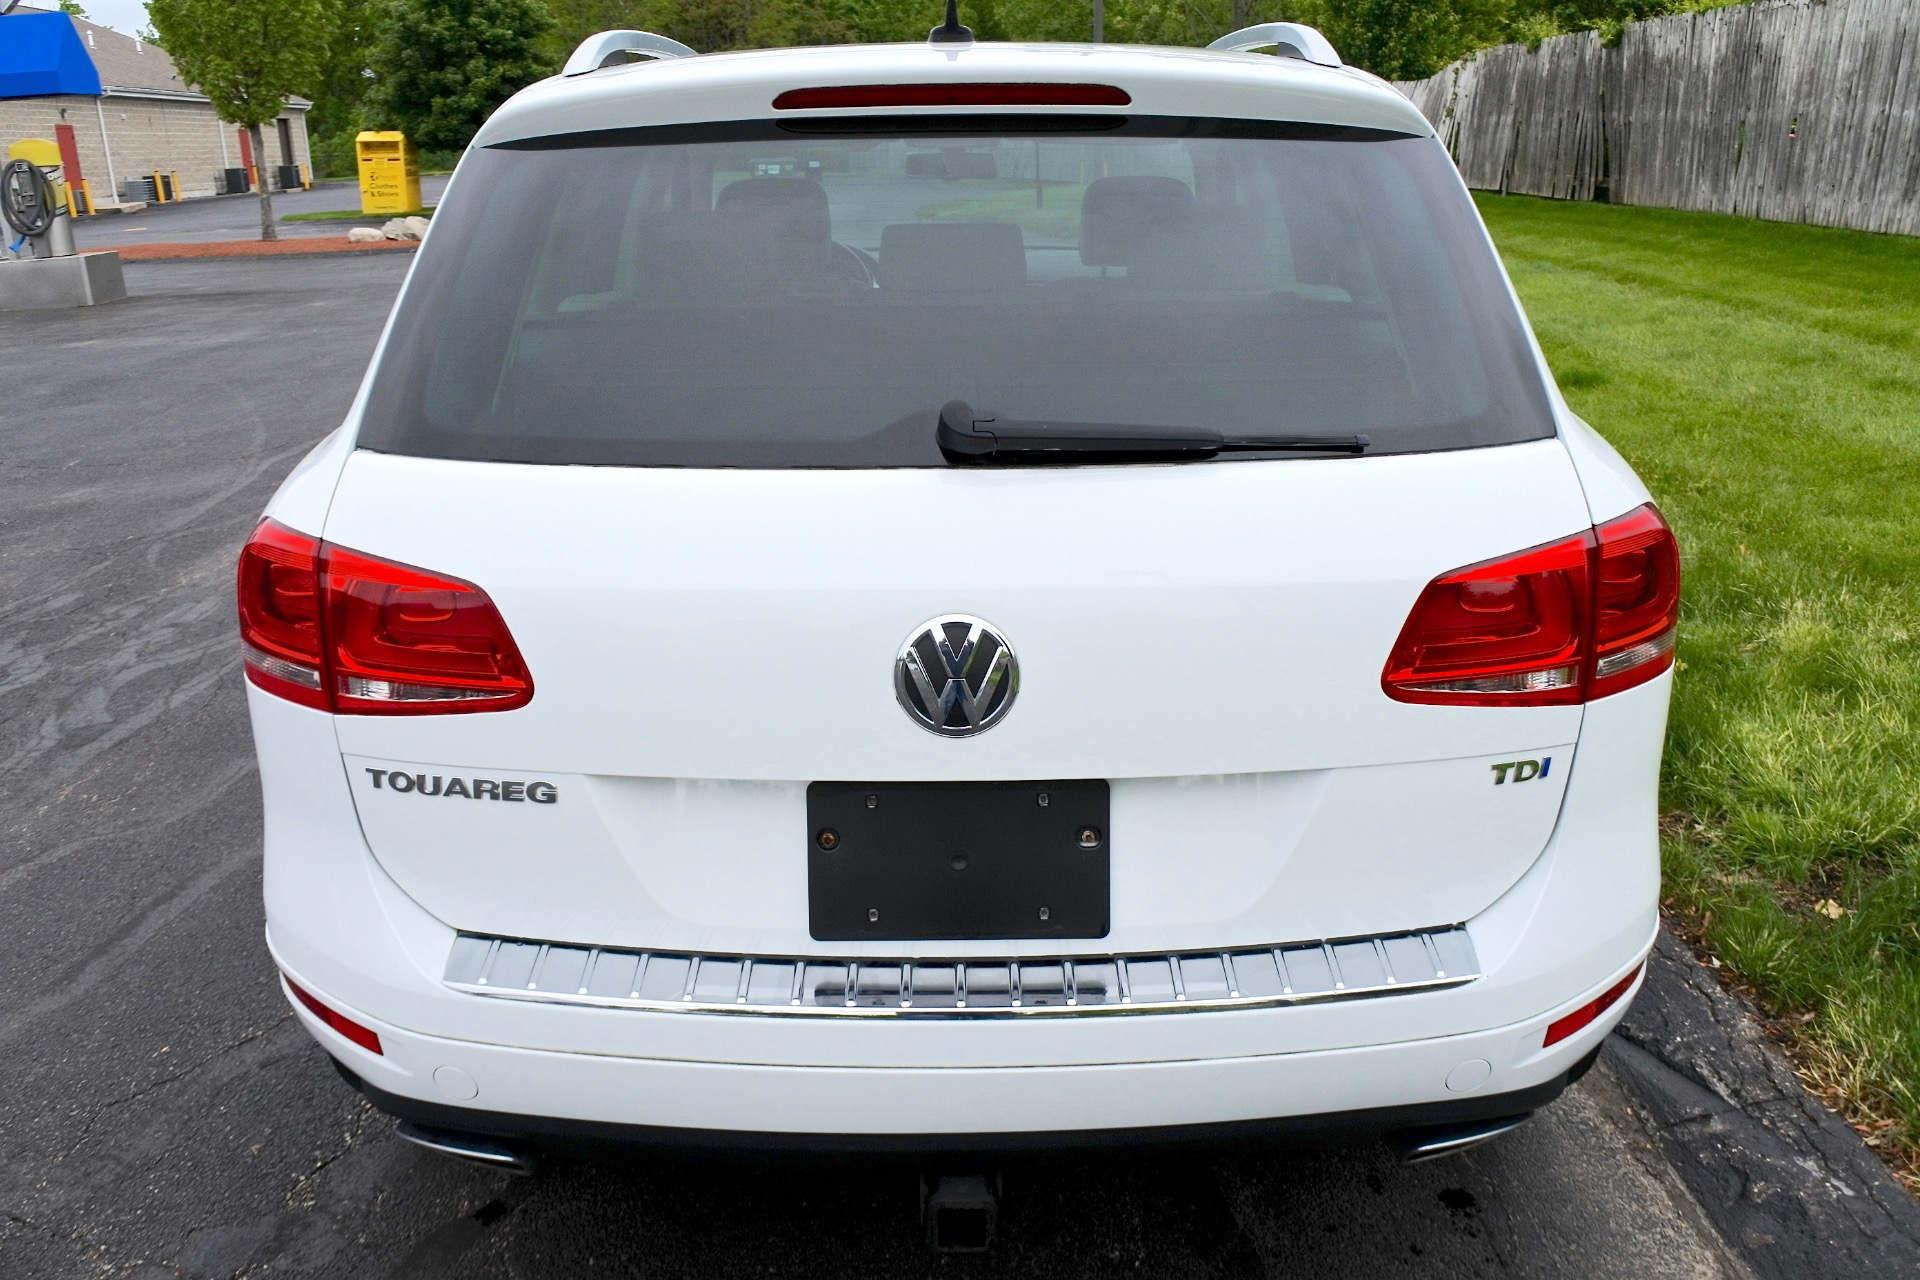 Used 2012 Volkswagen Touareg TDI Lux Used 2012 Volkswagen Touareg TDI Lux for sale  at Metro West Motorcars LLC in Shrewsbury MA 4